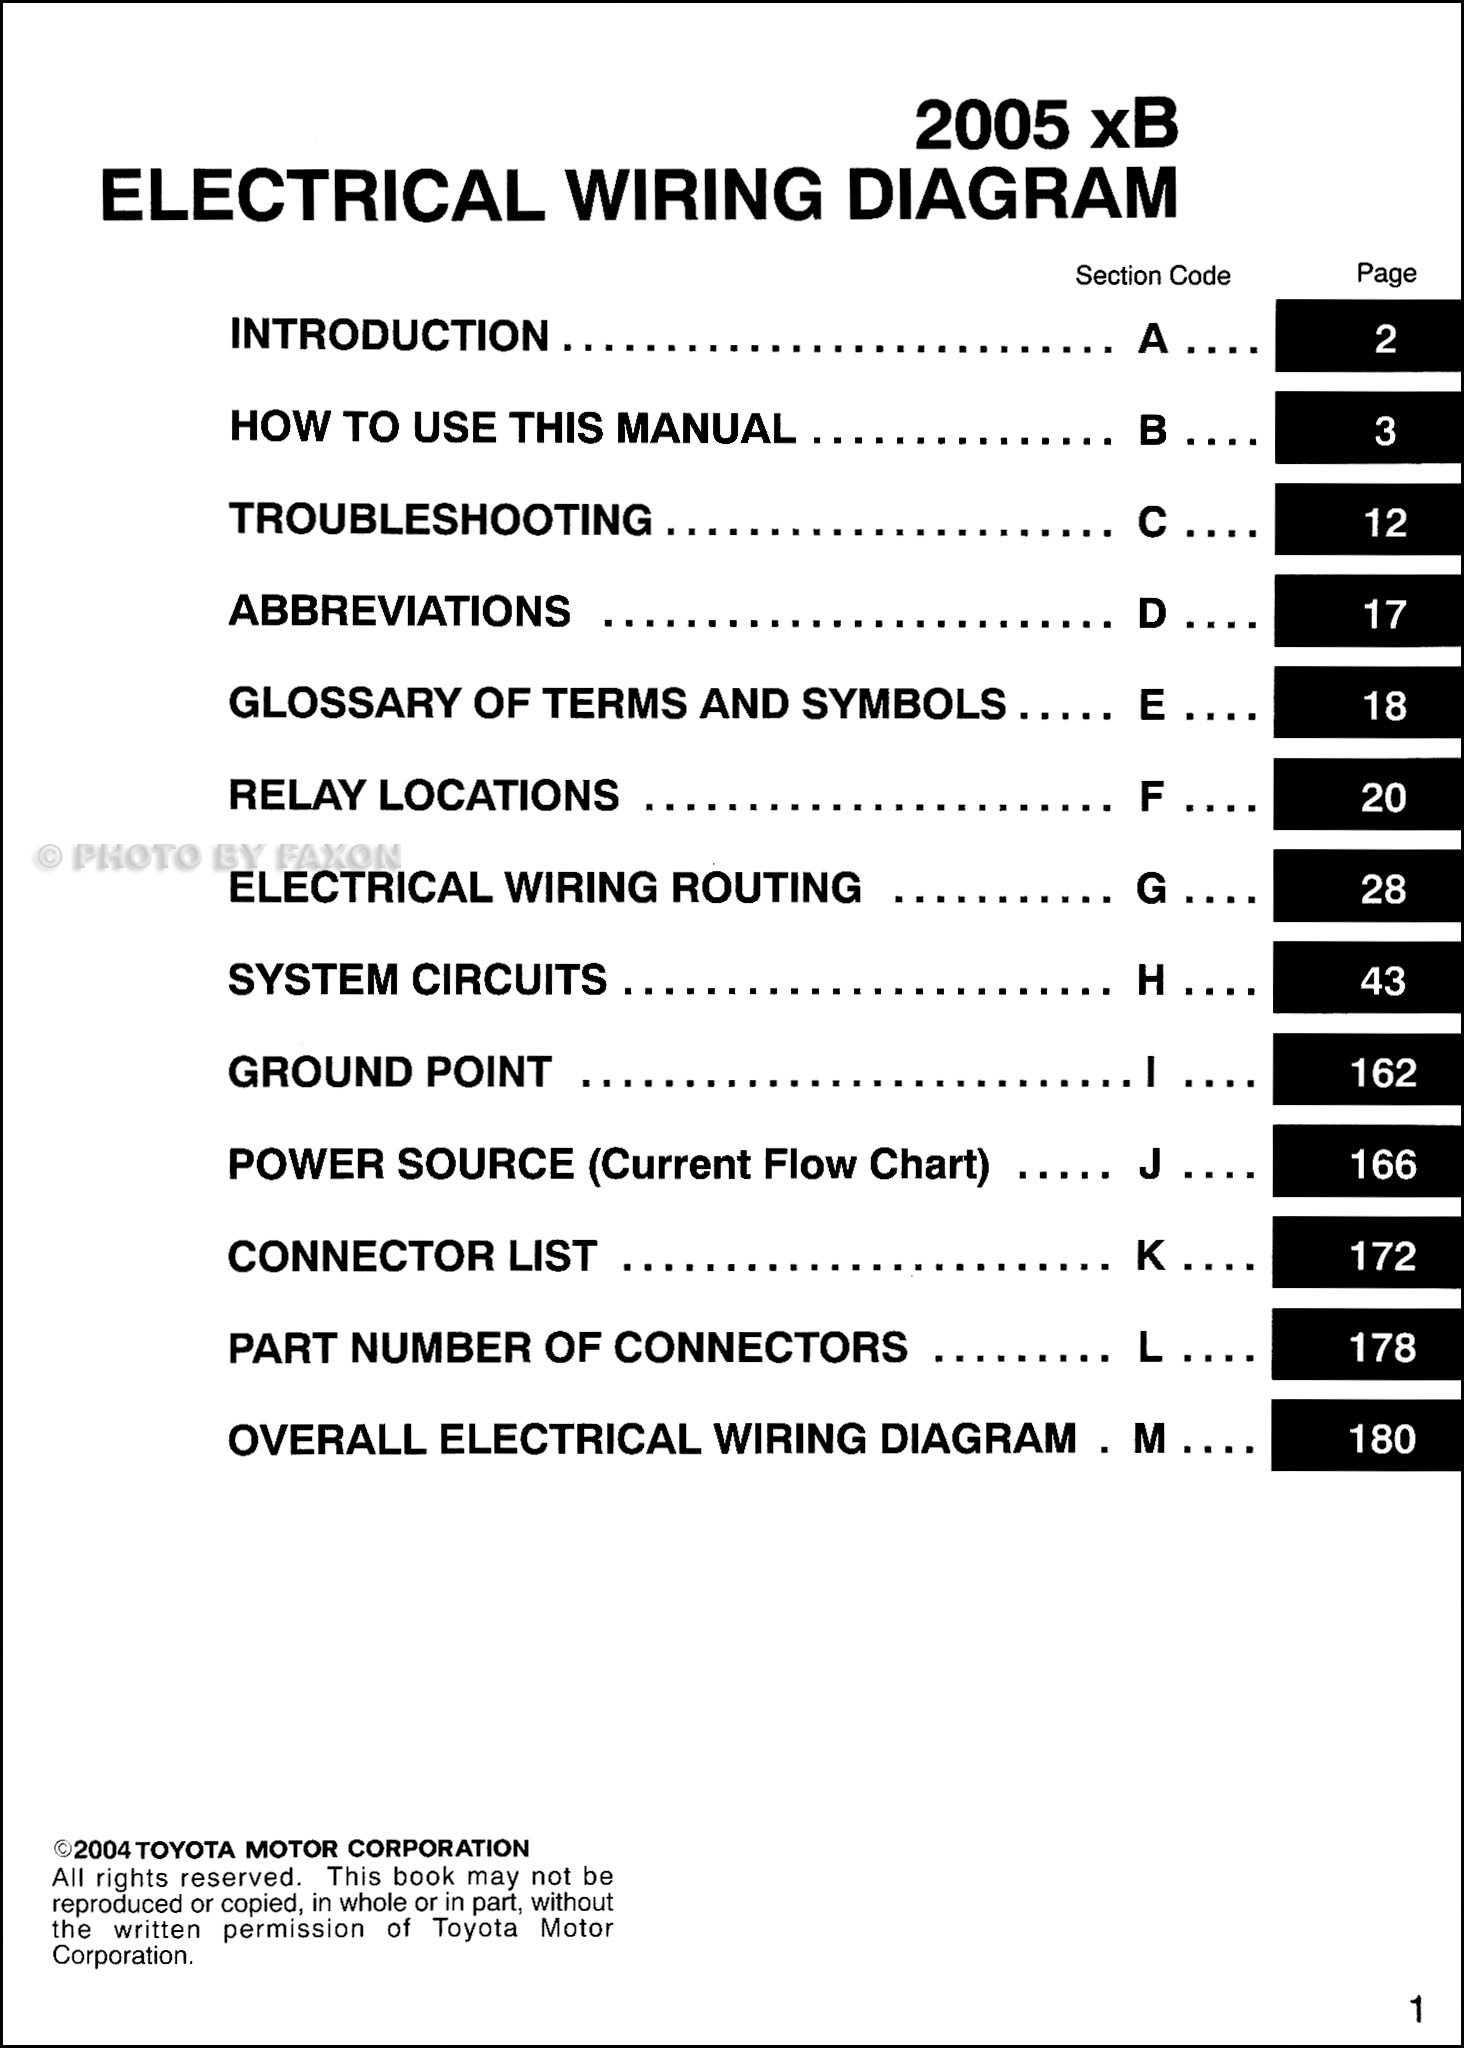 Wire Color Code Also Wiring Diagram On Tc Rtd Wiring Diagram